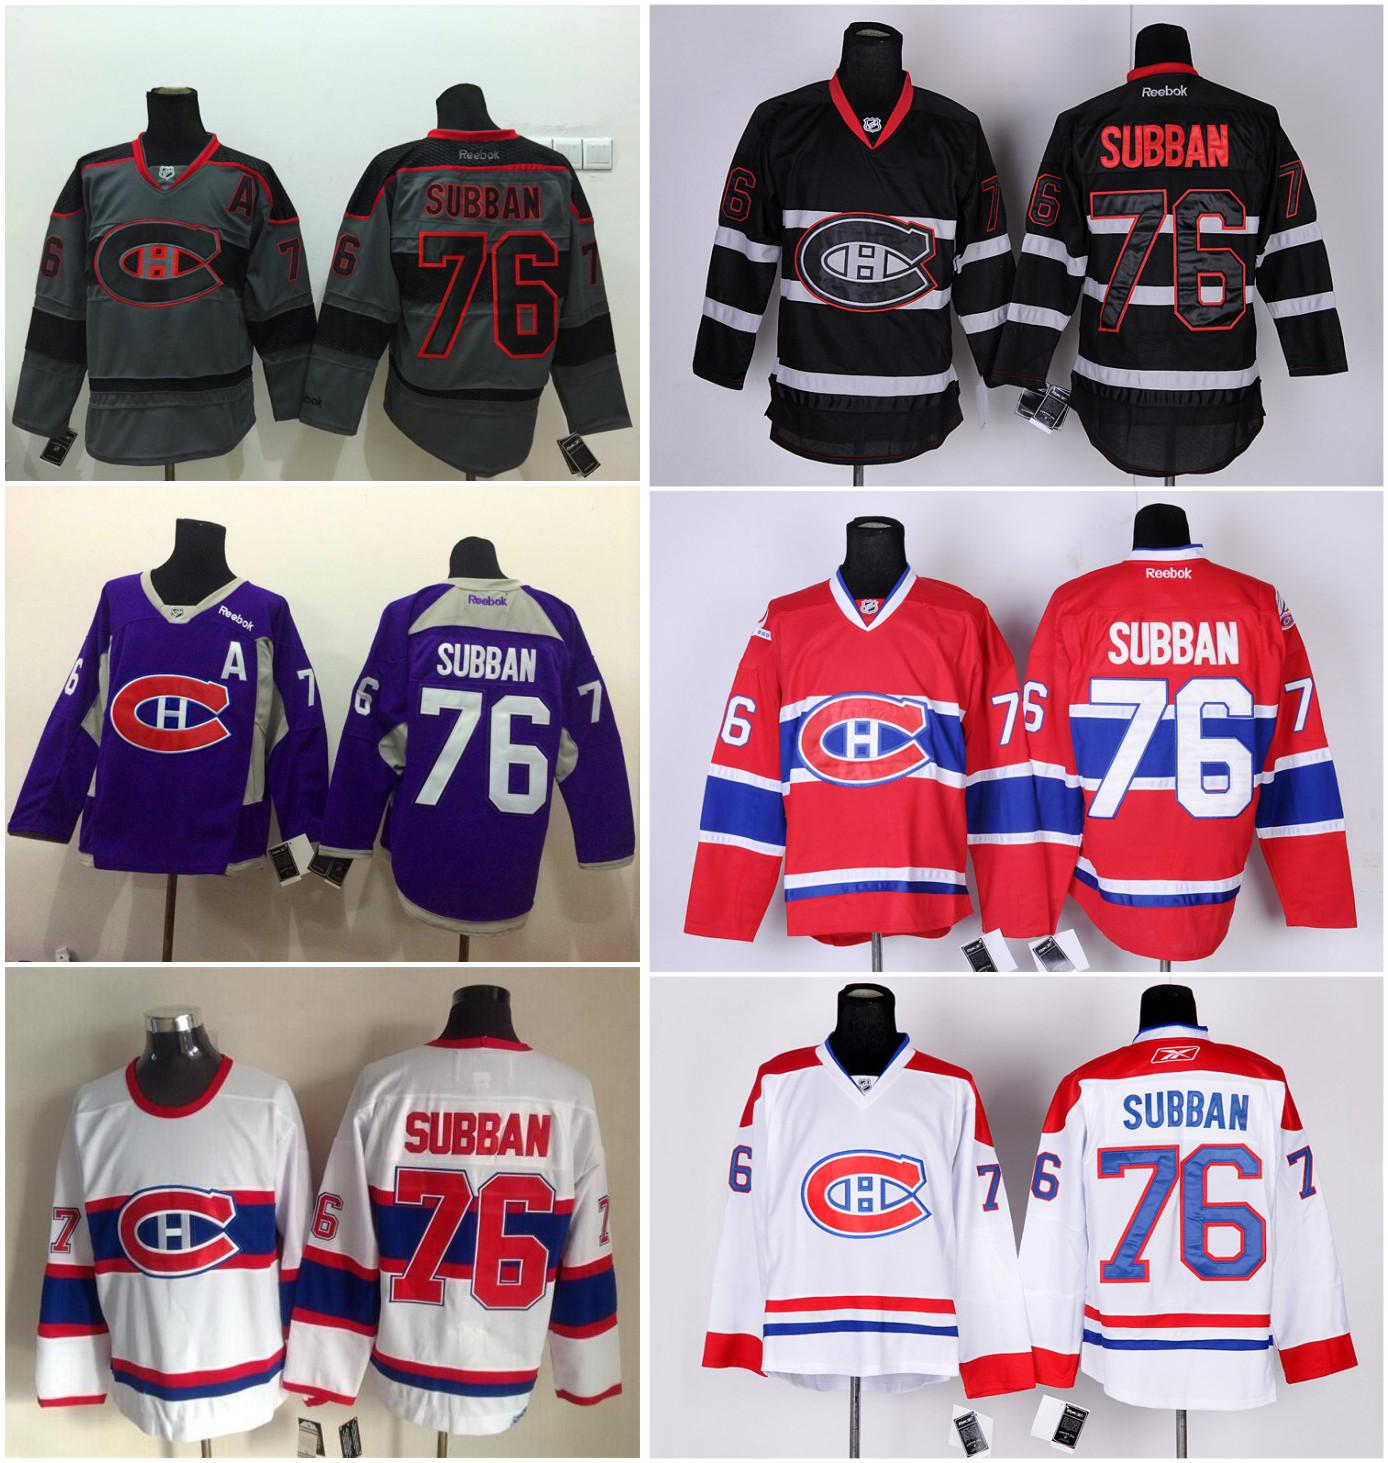 cd8b3973a08 ... Women DHL Montreal Canadiens 76 P-K- Subban Red White Hockey Jersey